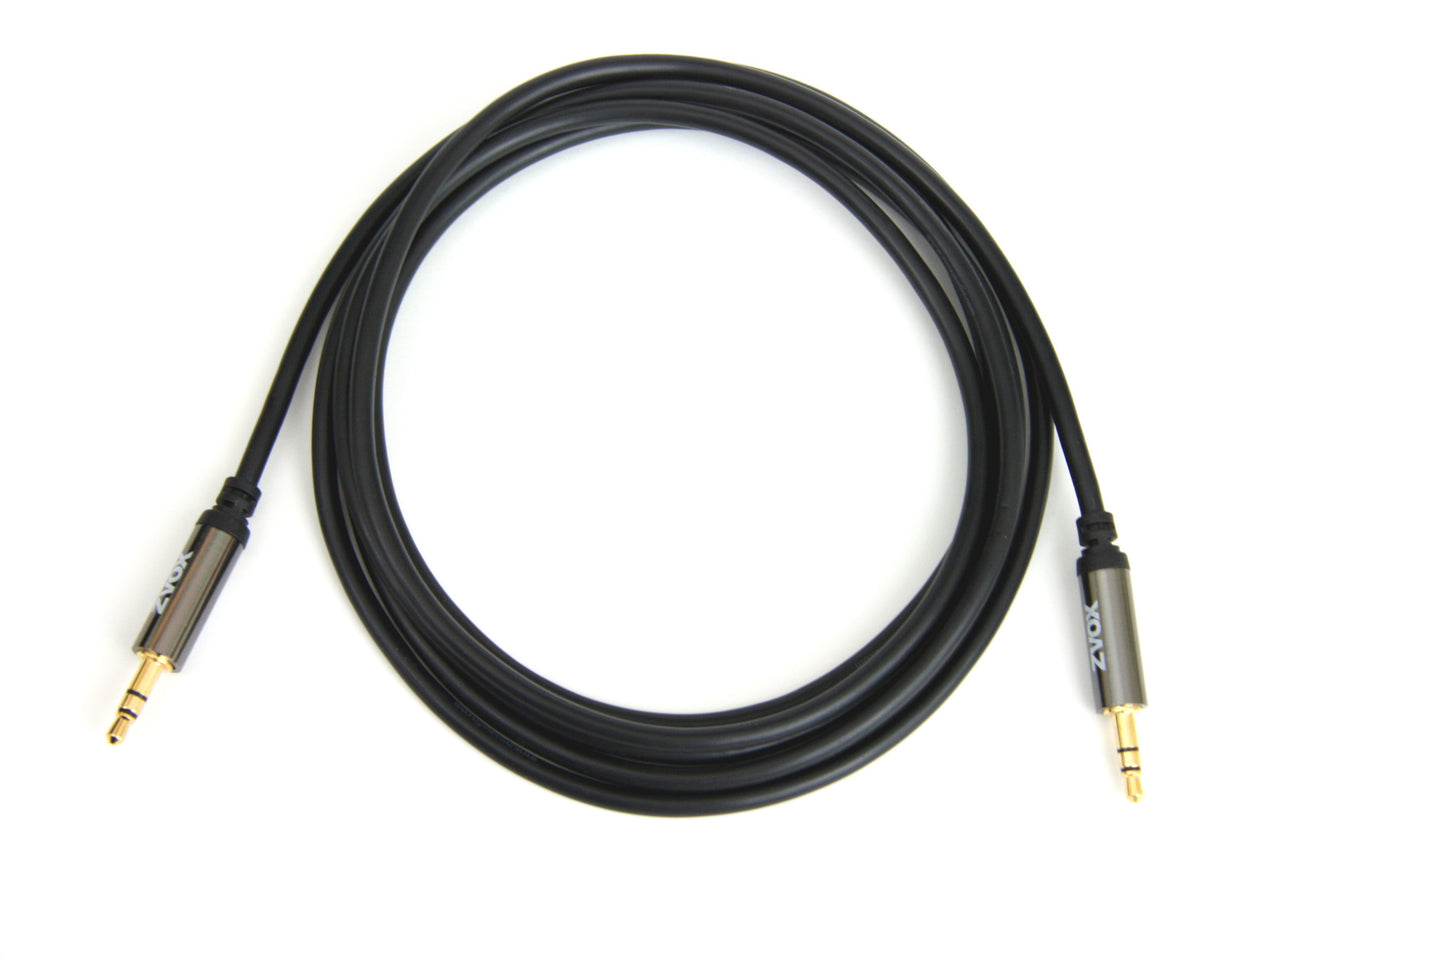 Mini-Mini Connecting Cable - 2 Meter